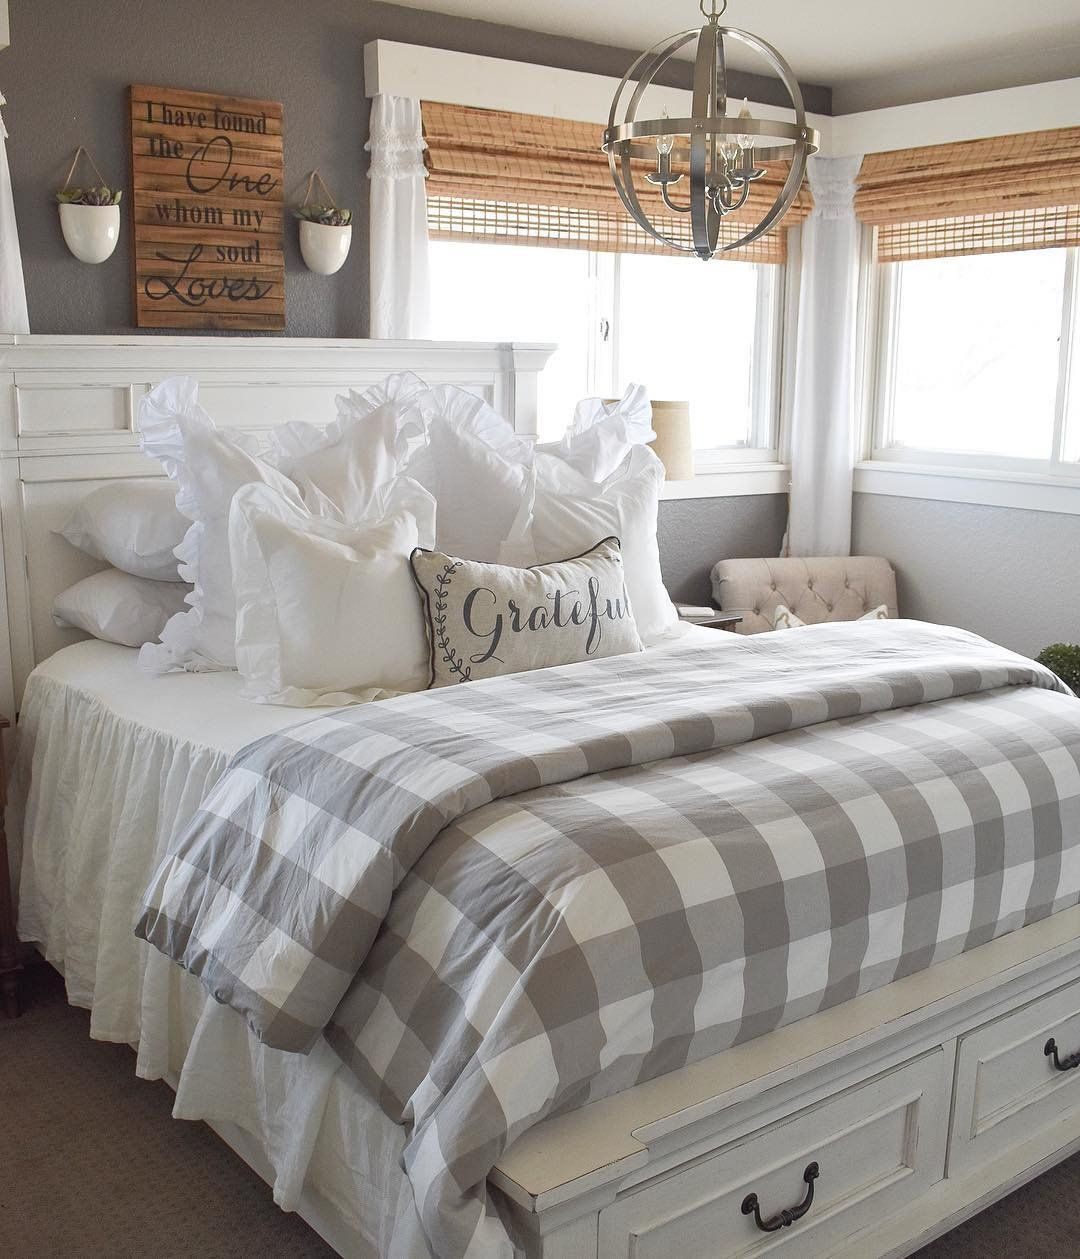 I finally found the bedspread I've been looking for...and it was on sale! I have loved these drop skirt (is this even what they are called??) ruffled bedspreads since I saw joannagaines use a similar one in a house probably 5 years ago. I searched high and low online. I did find a couple, but they were too far out of my budget. Then sweet Jenny bigfamilylittlefarmhouse told us all about her favorite decor company, Piper Classics. Score! Needless to say, our master bedroom will be *cough* finally